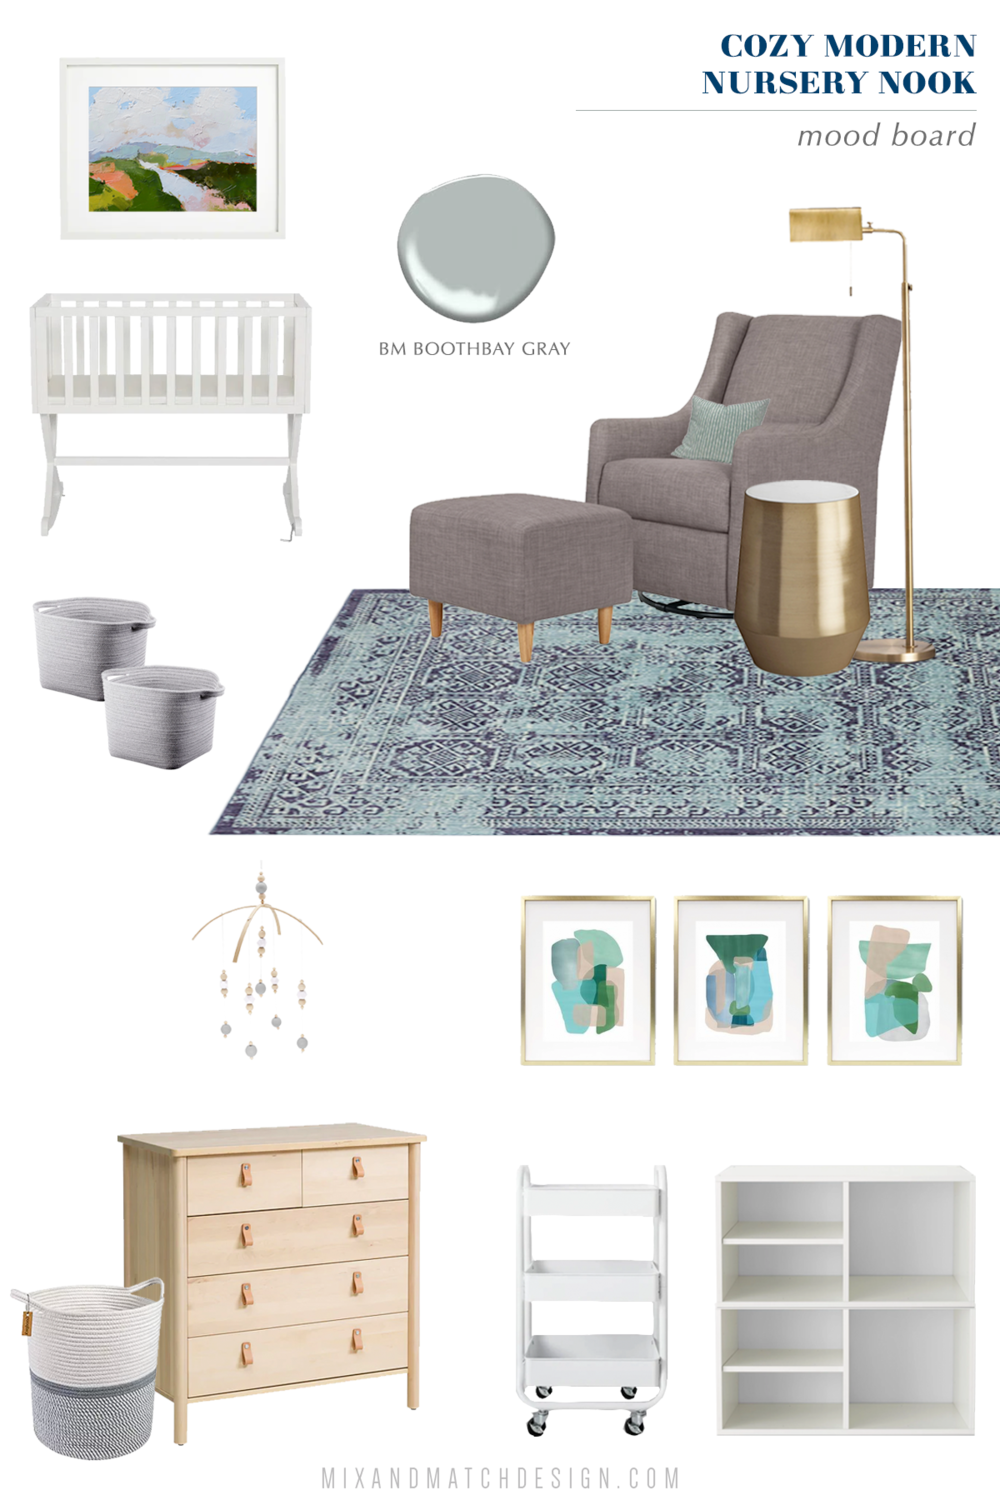 "Mood Board for a Scandinavian modern nursery. Come on over to the Mix & Match Design Company blog for this cozy modern nursery nook reveal! This space is shared with a home office and is full of great ideas on how to squeeze in a small nursery into a closet. The ""nursery nook"" concept is perfect if you live in a smaller home."